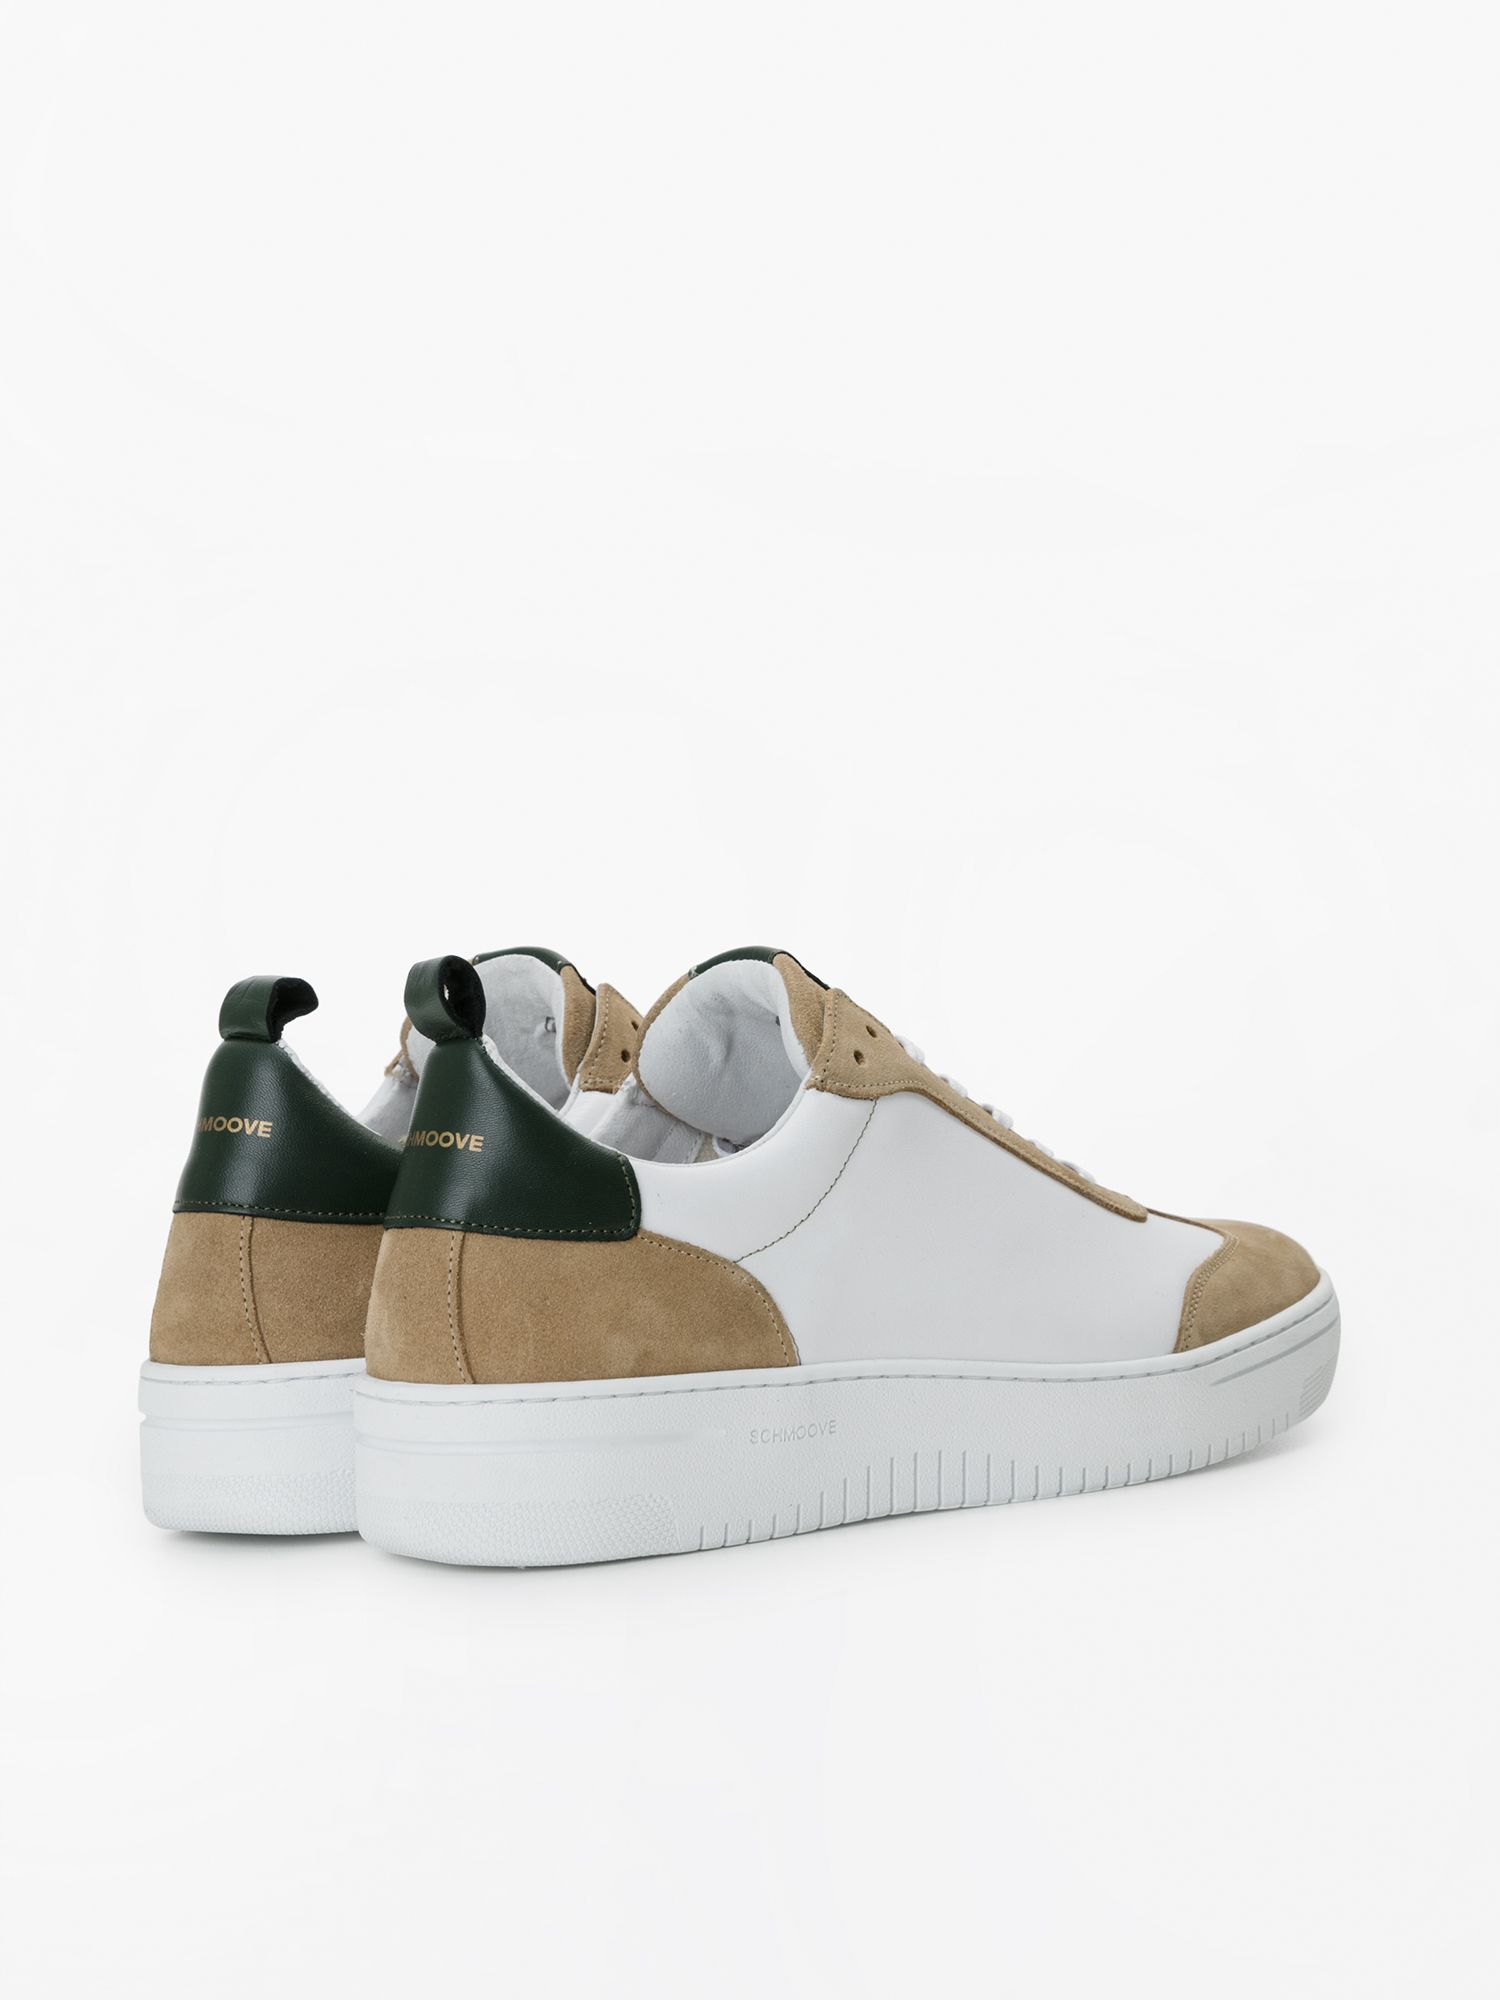 schmoove.fr EVOC SPEED - SUEDE/NAPPA - TAUPE/FORET